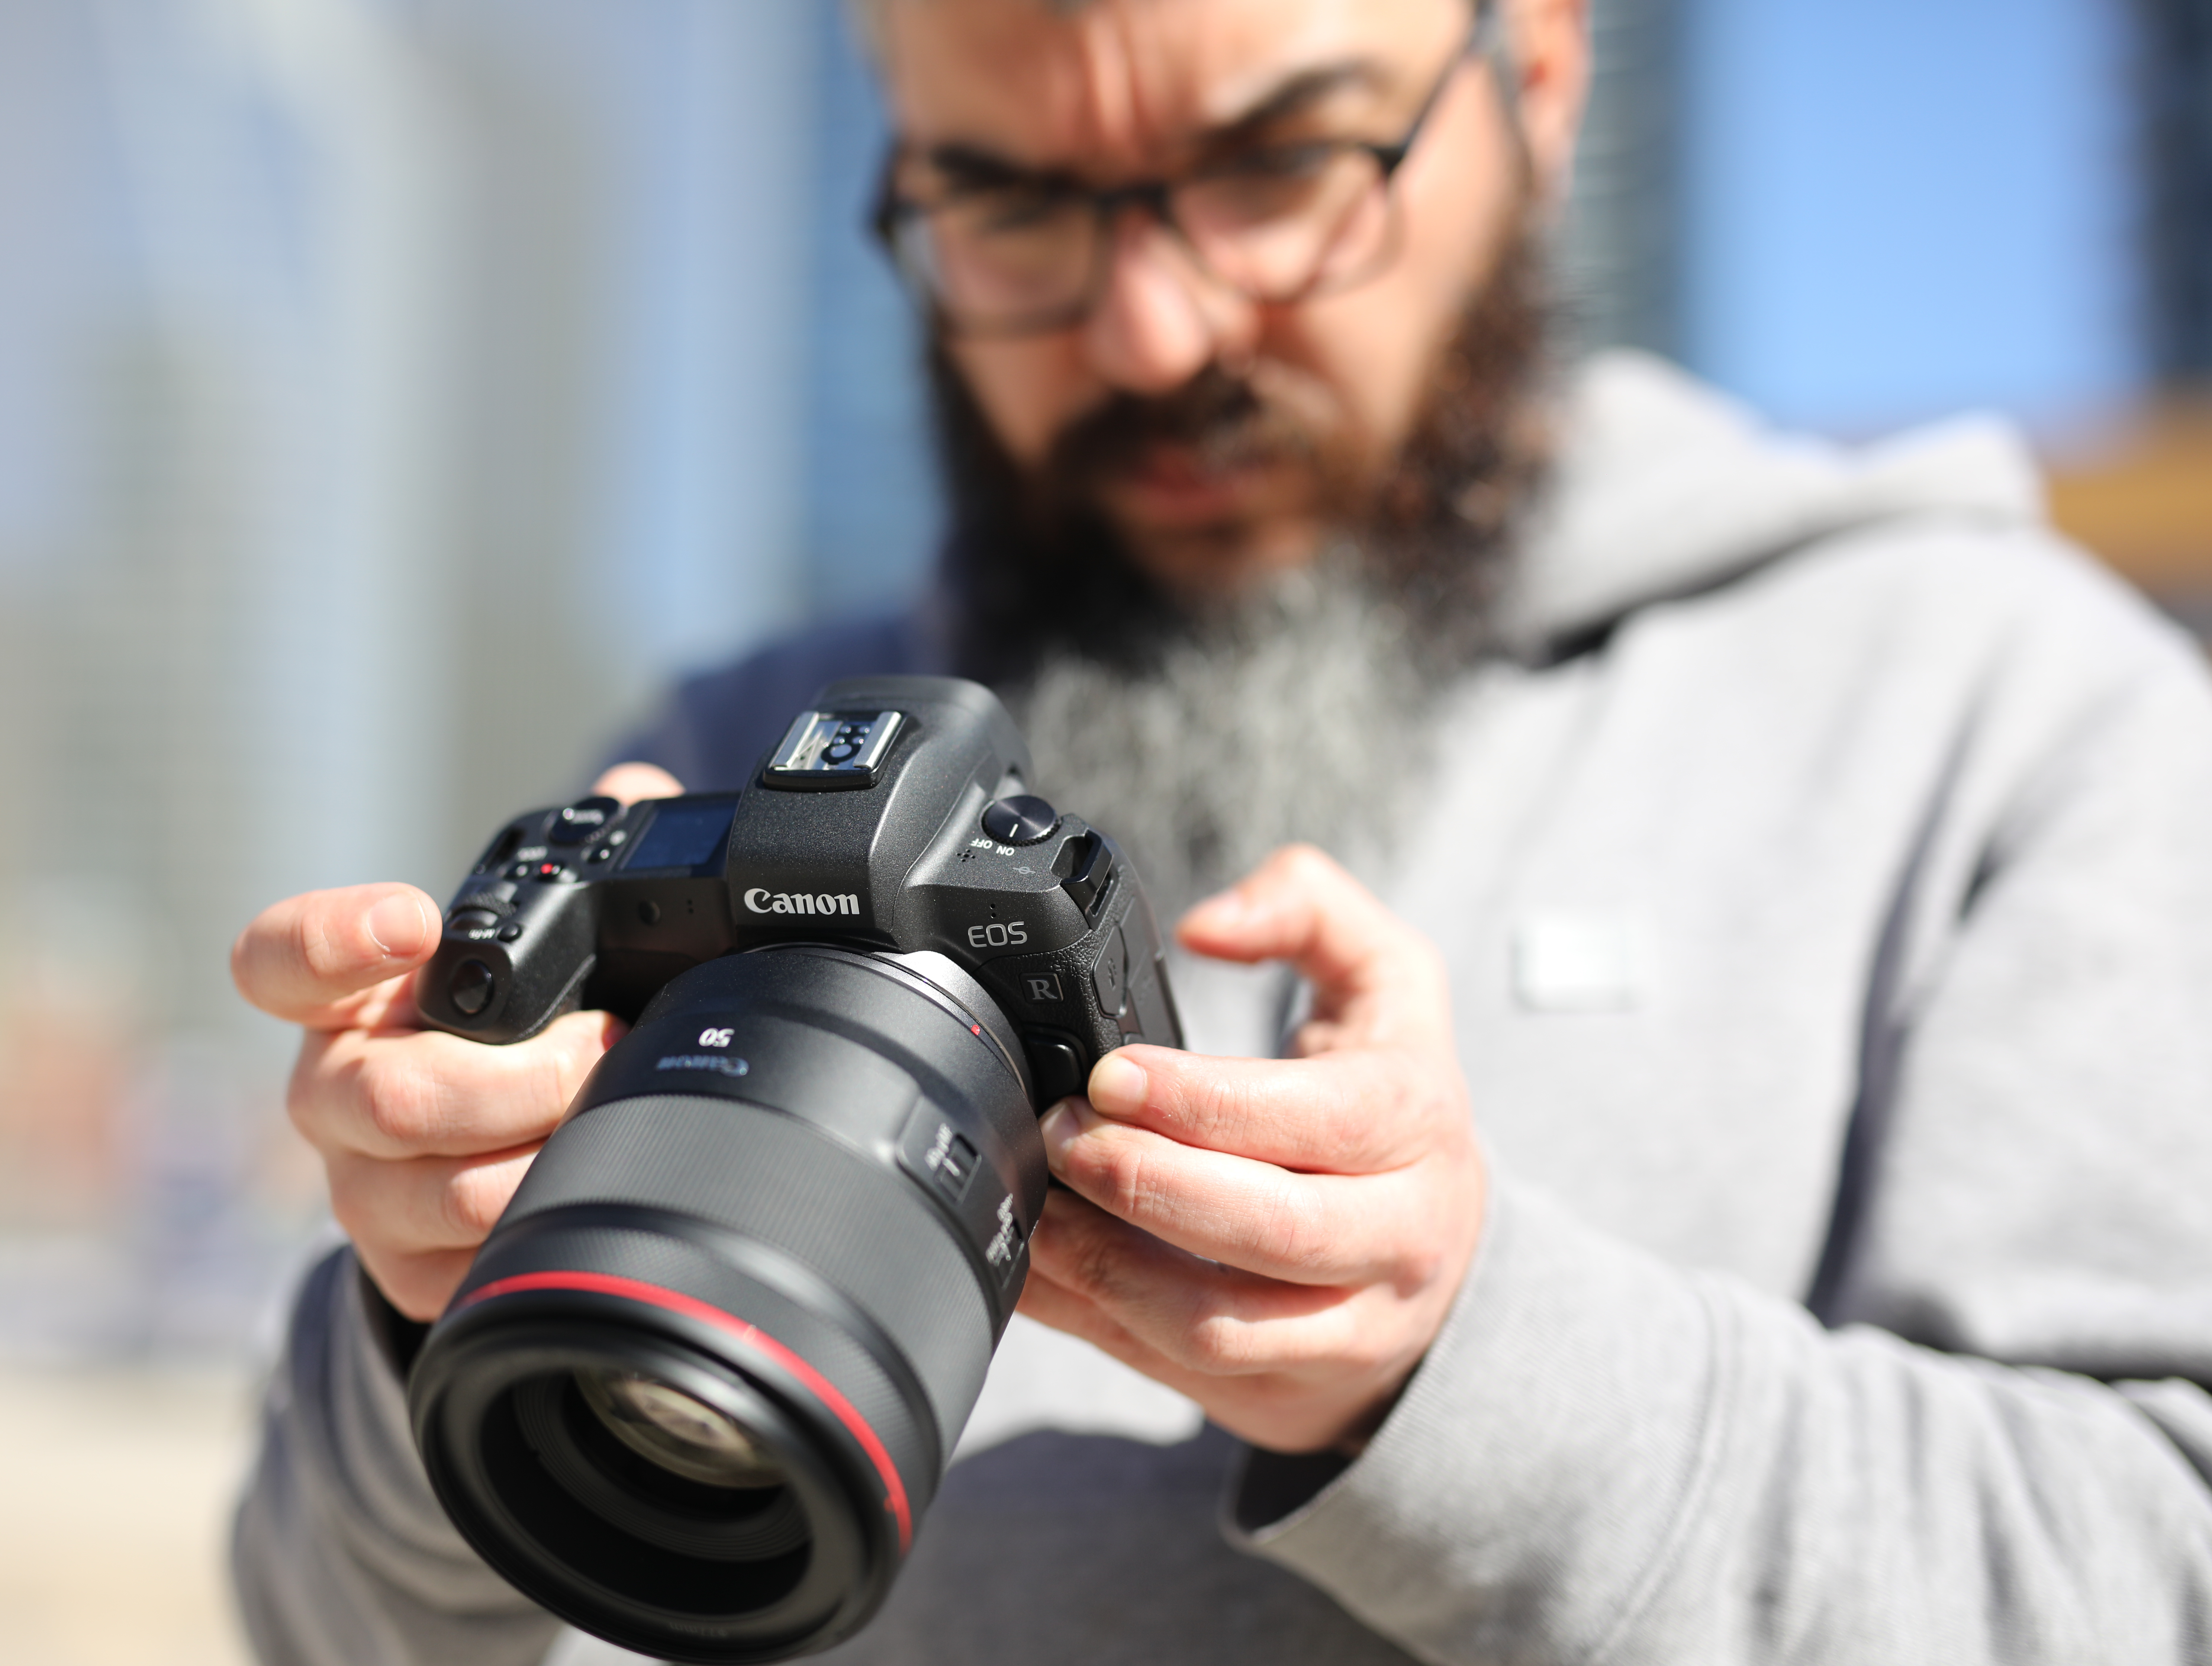 5 Reasons To Go Mirrorless With Canon The Camera Store Blog